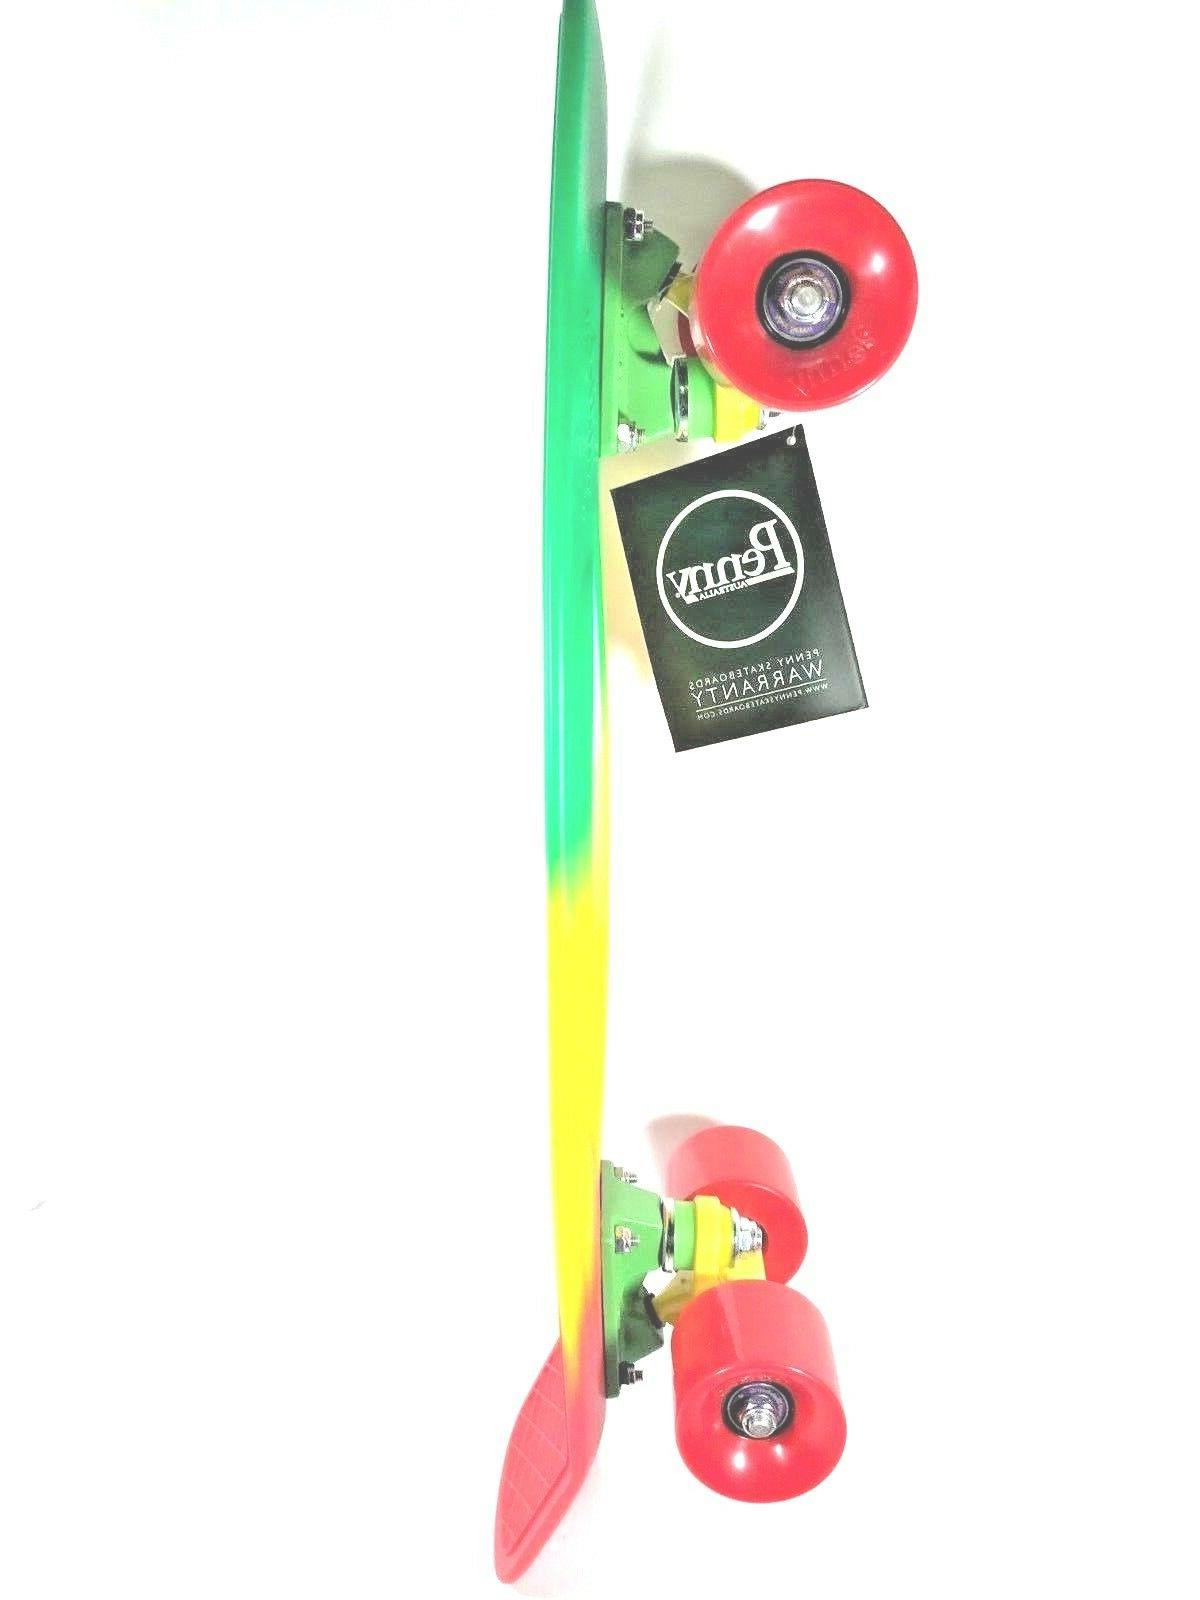 "Penny 22"" completed,skateboards/TRUCKS 5.0"", 5.25"", bearing,"